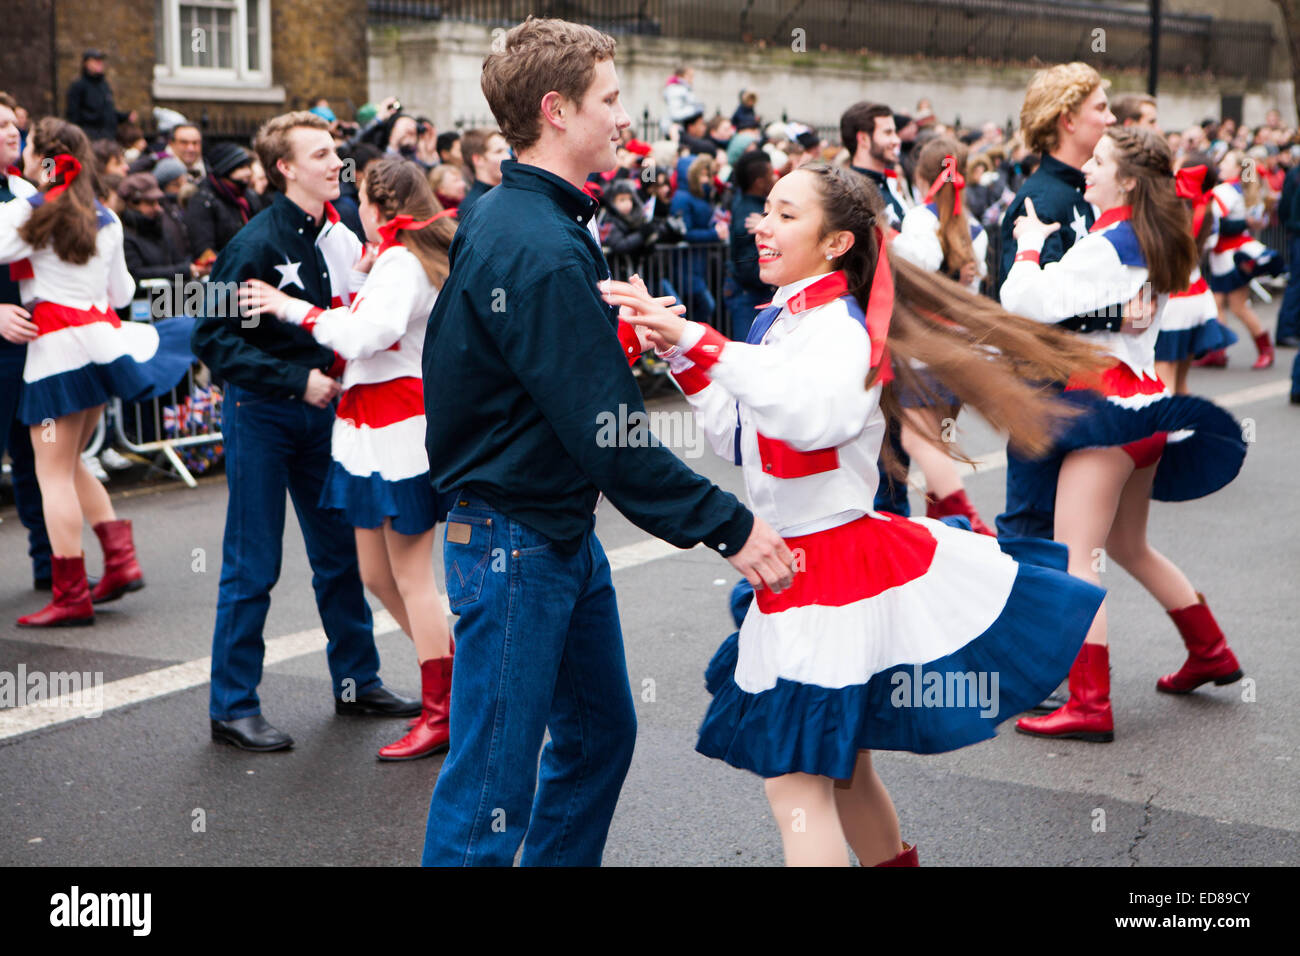 Westminster, Central London, London, UK 1st January 2015 The Wildcat Wranglers London New Years Parade Day 2015 Stock Photo